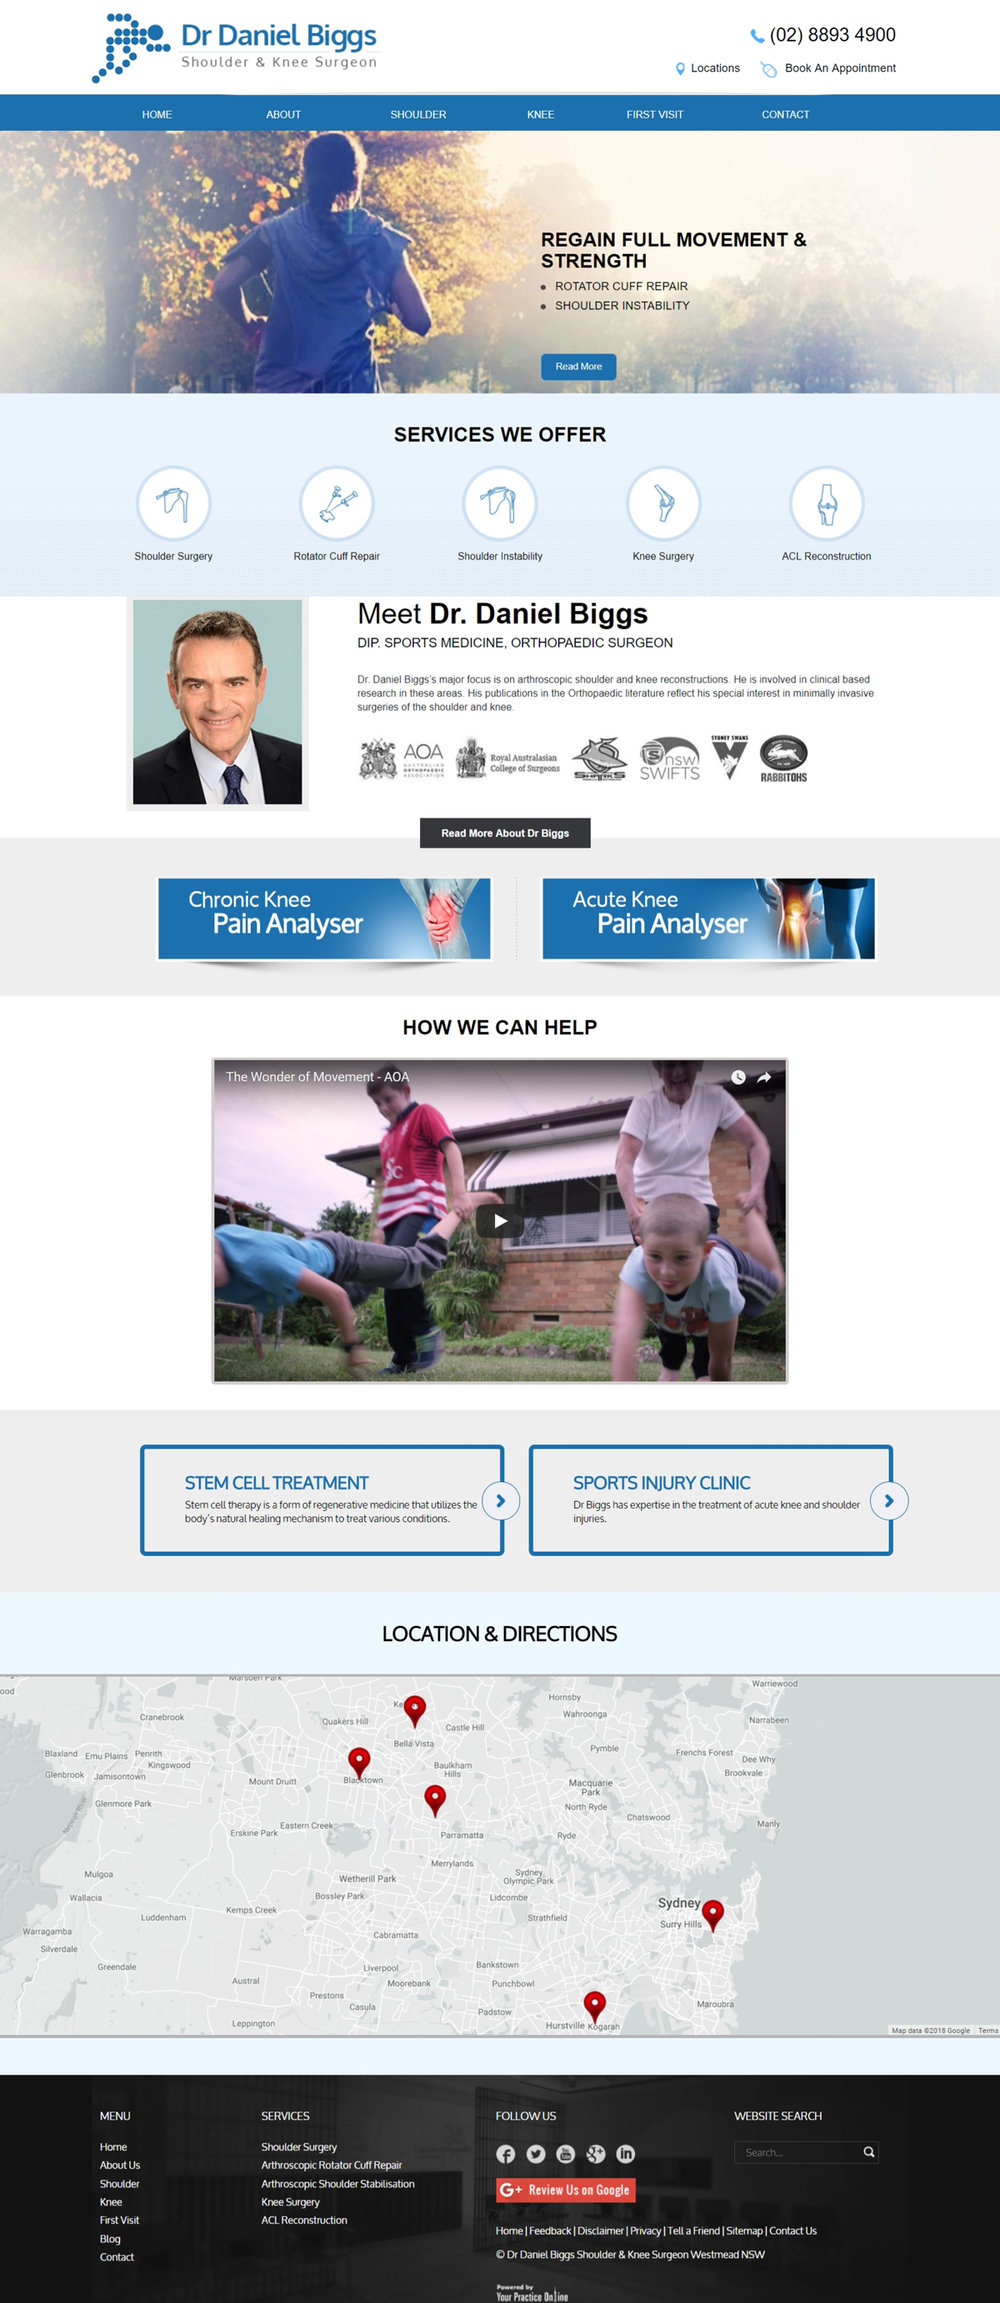 Sydney Shoulder & Knee Orthopaedic Surgeon Website